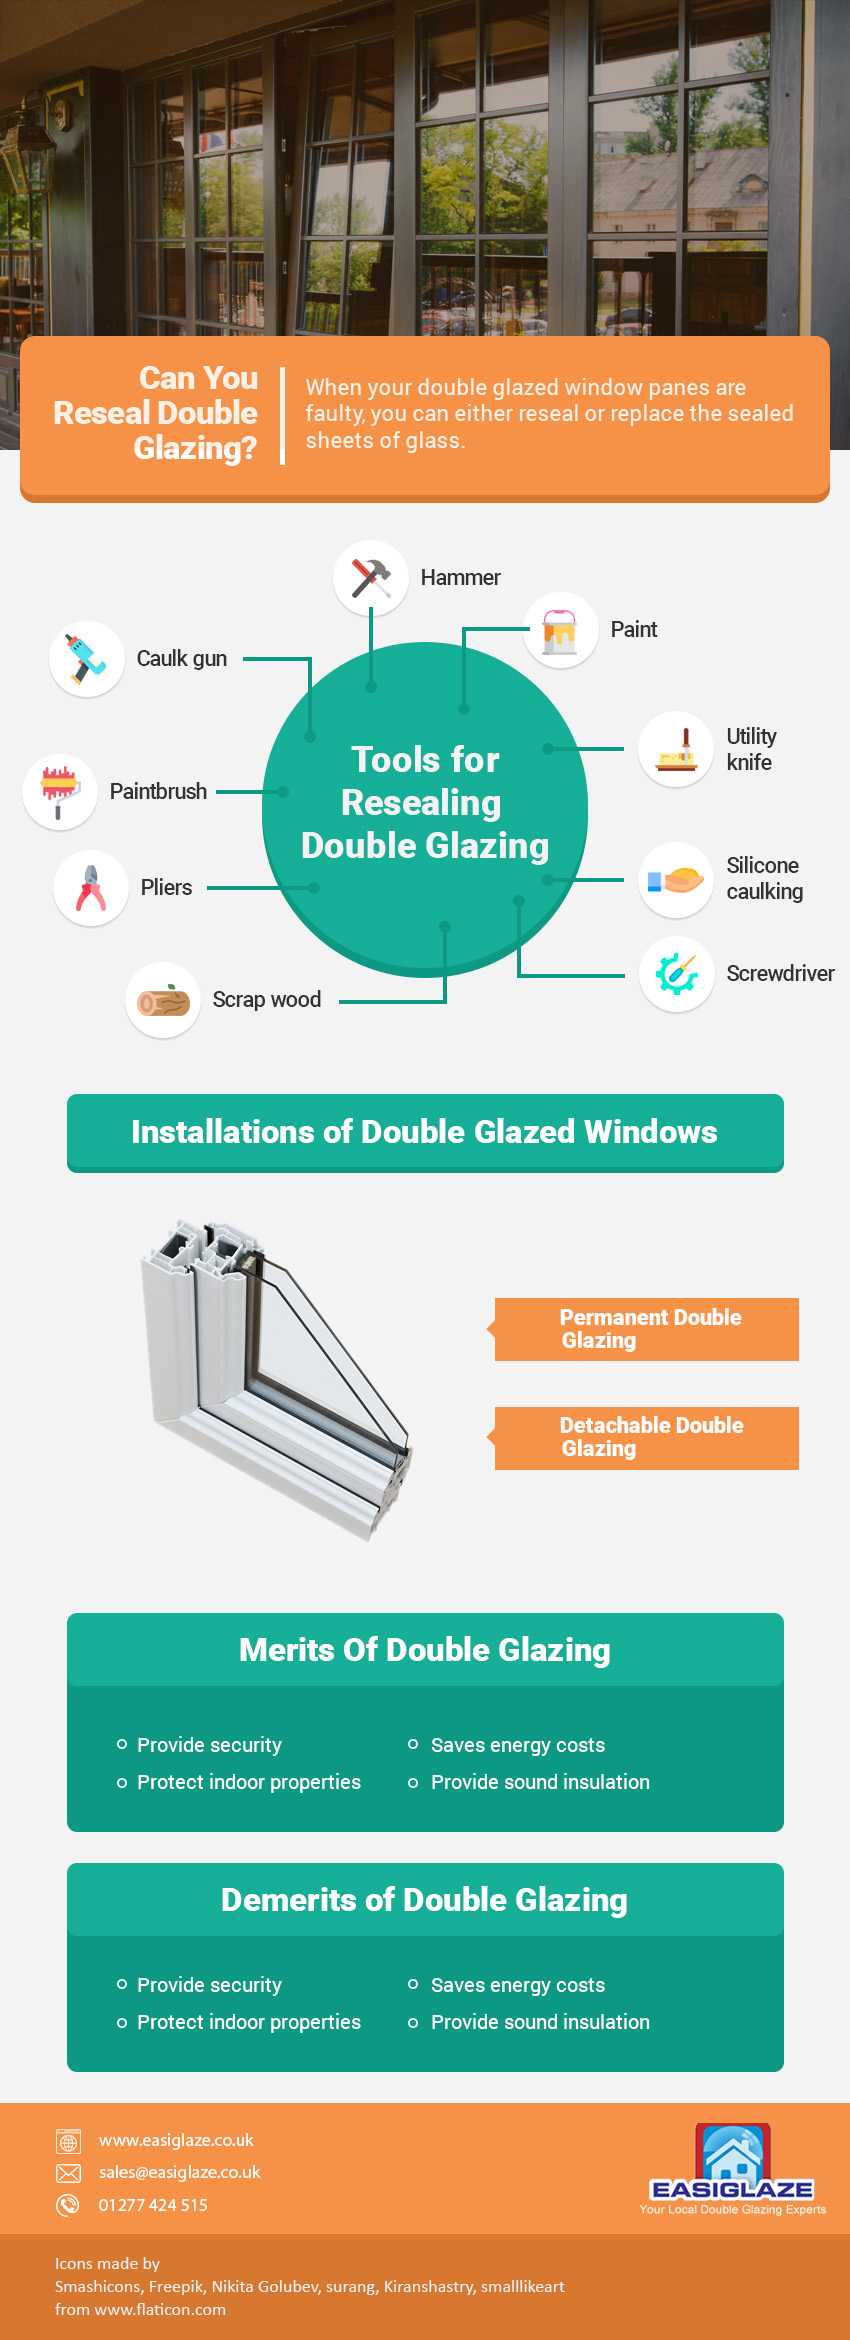 reseal double glazing